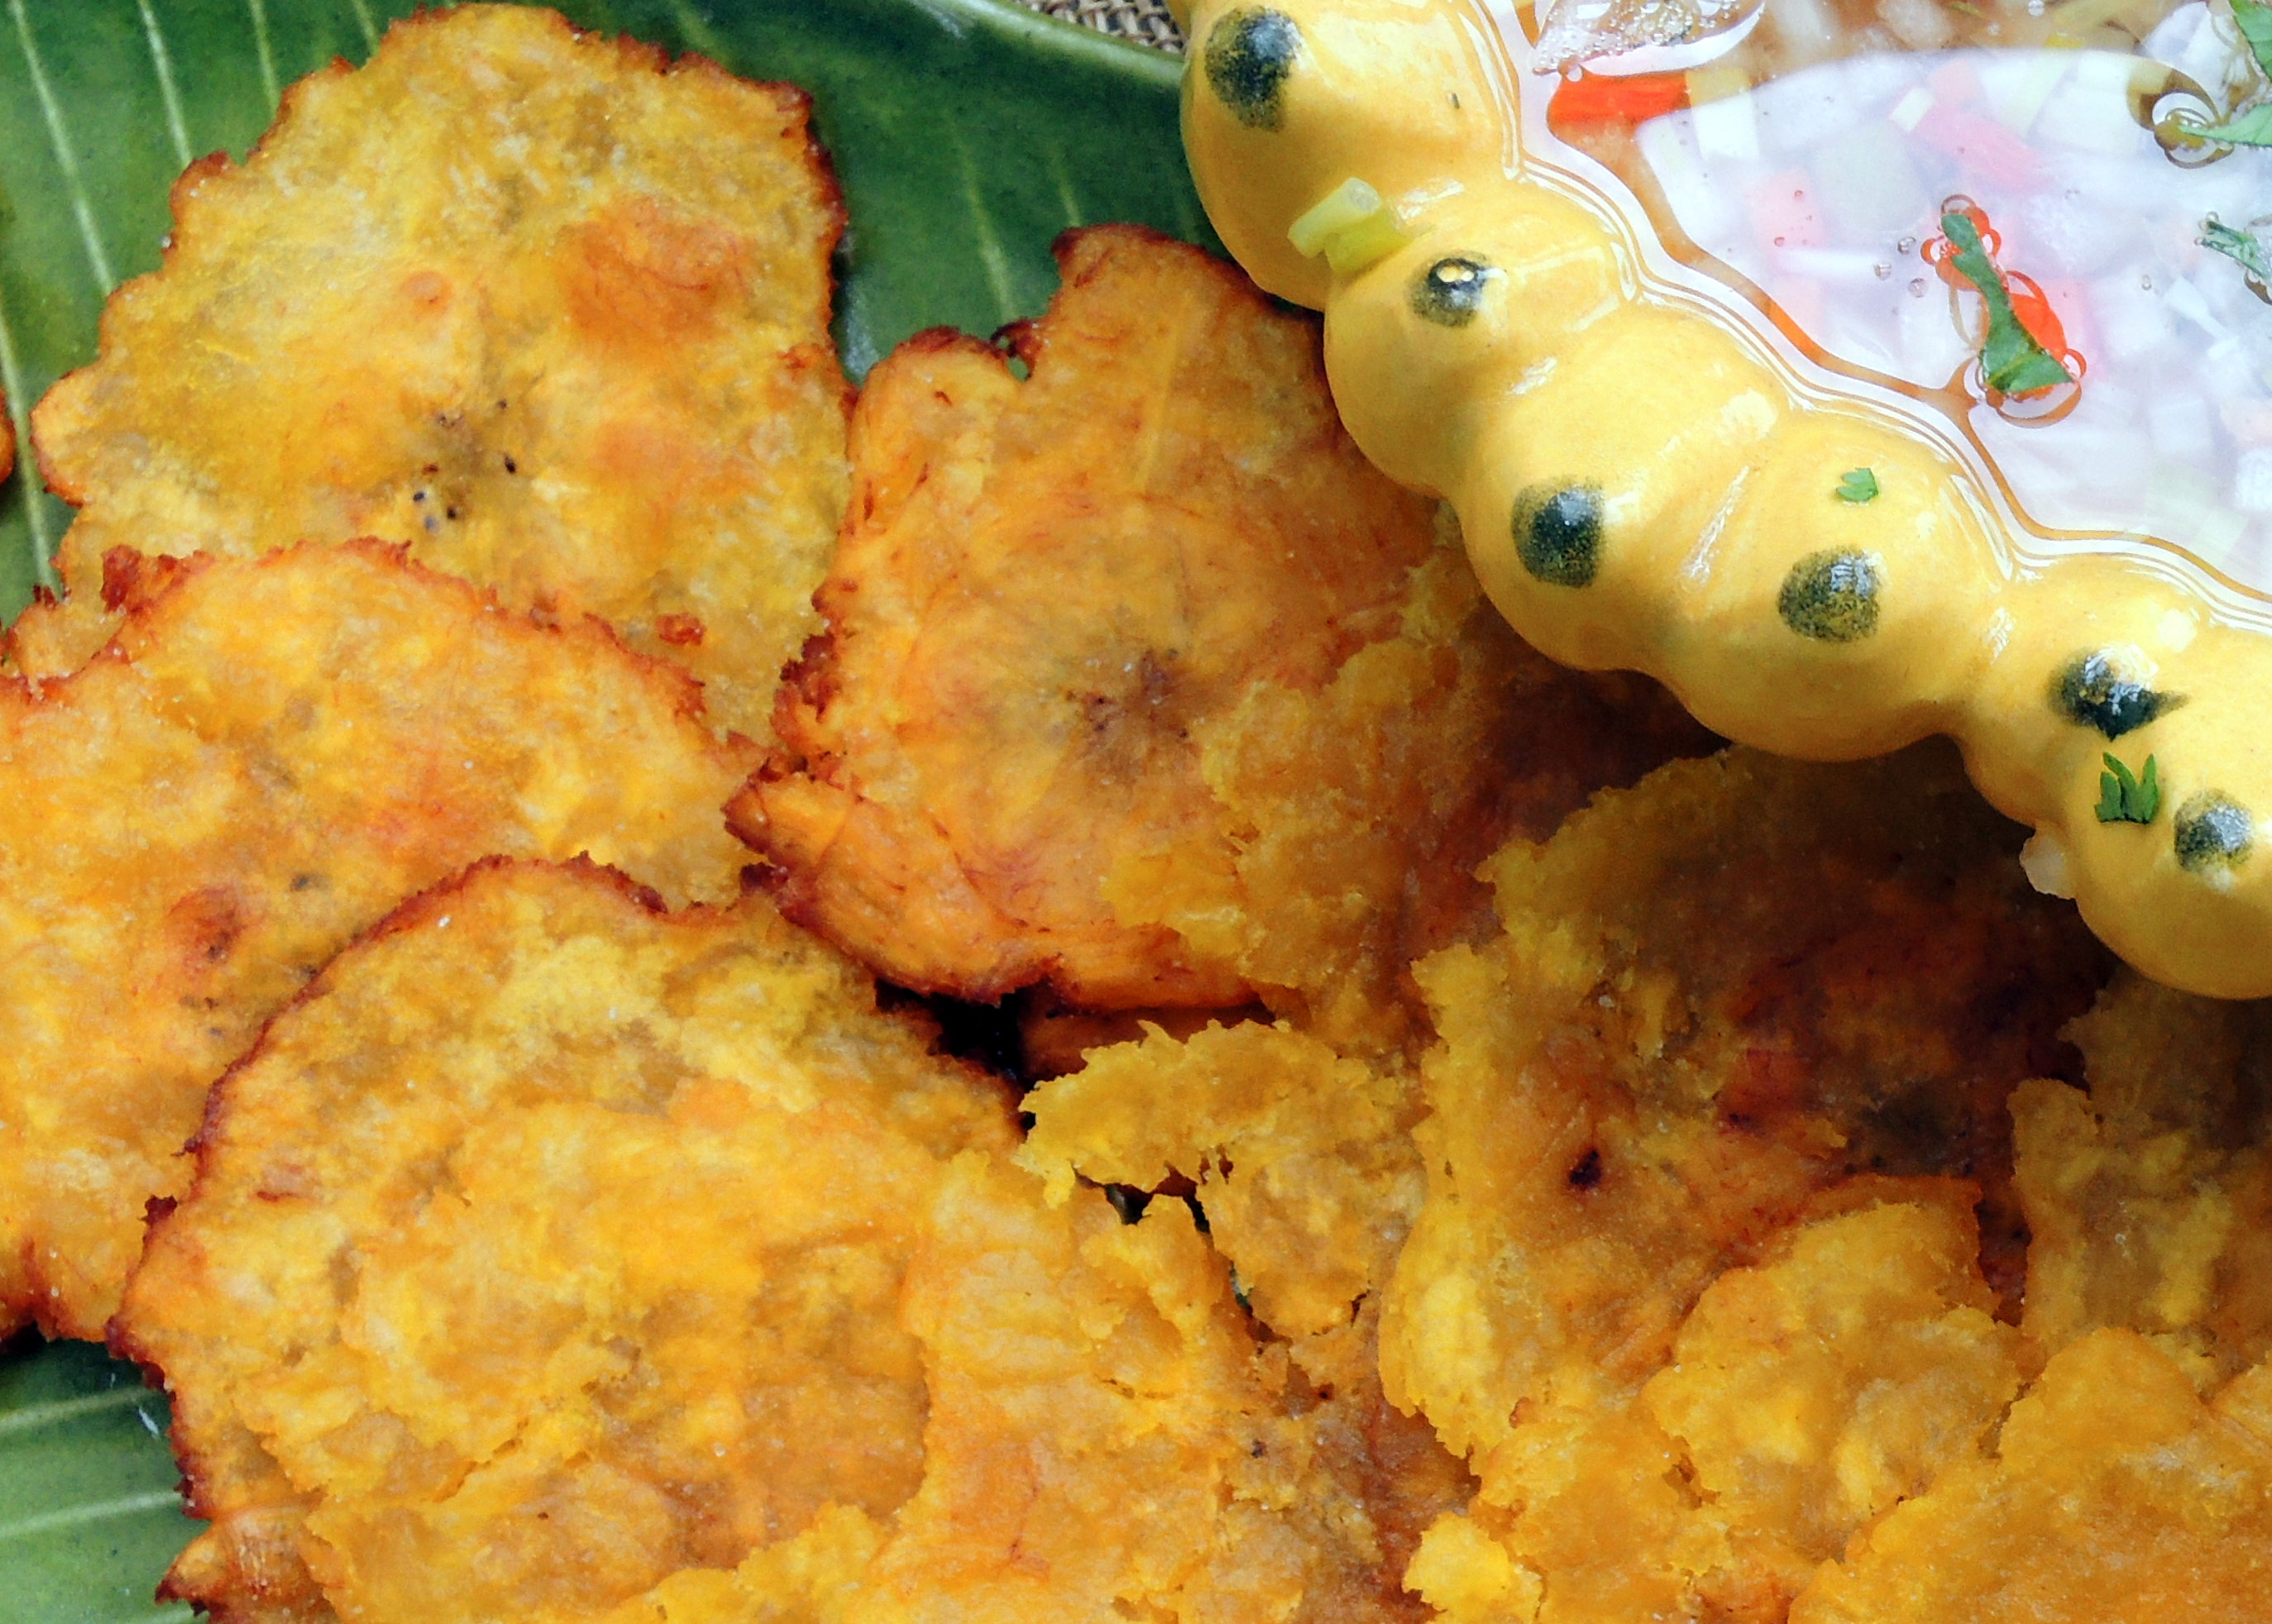 ... chips, crackers and other dunkers, tostones (fried green plantains) 2